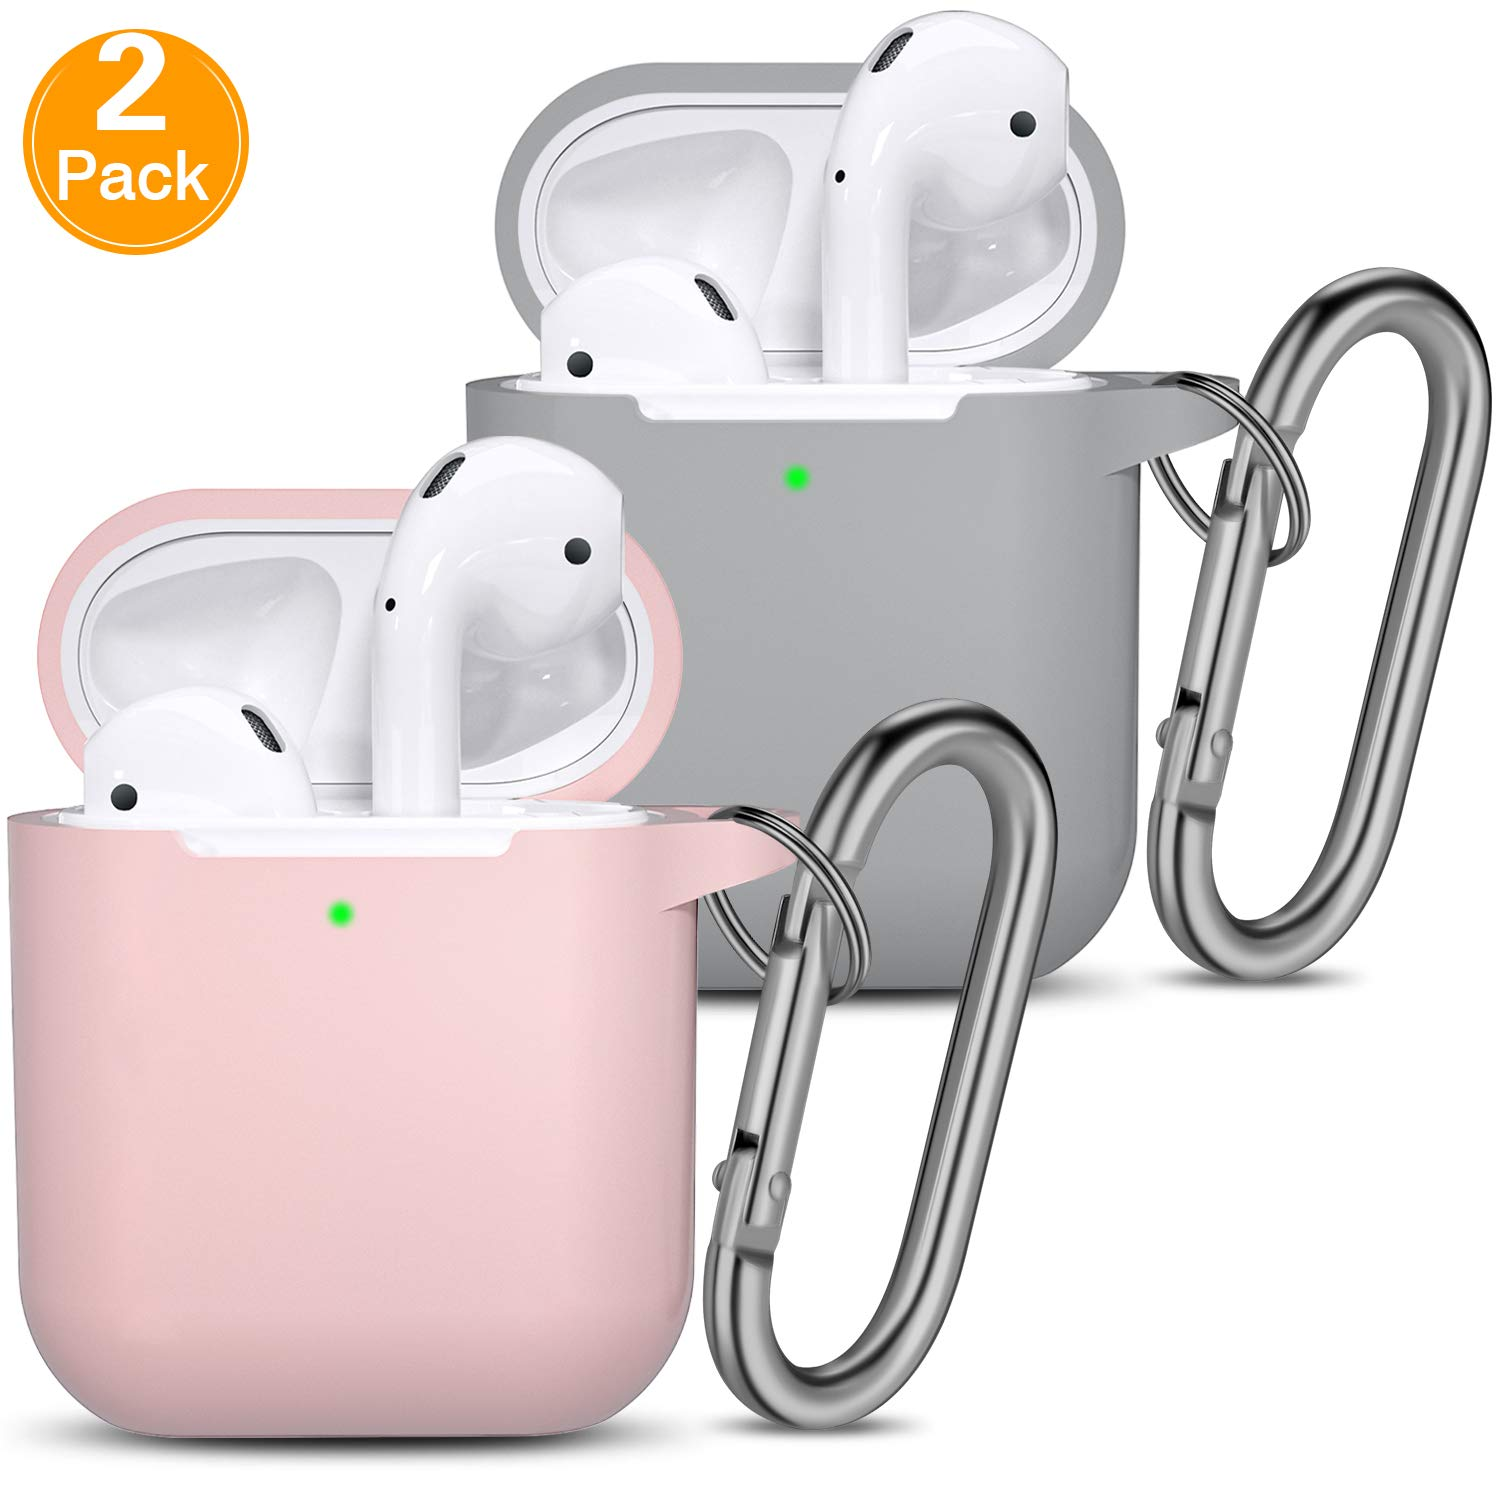 AirPods Case [Front LED Visible], 2 Pack Vcegari Anti-Dust Shock-Proof Durable Silicone Protective Cover Skin for AirPods 1&2 Charging Case with Firm Keychain, Light Pink/Gray